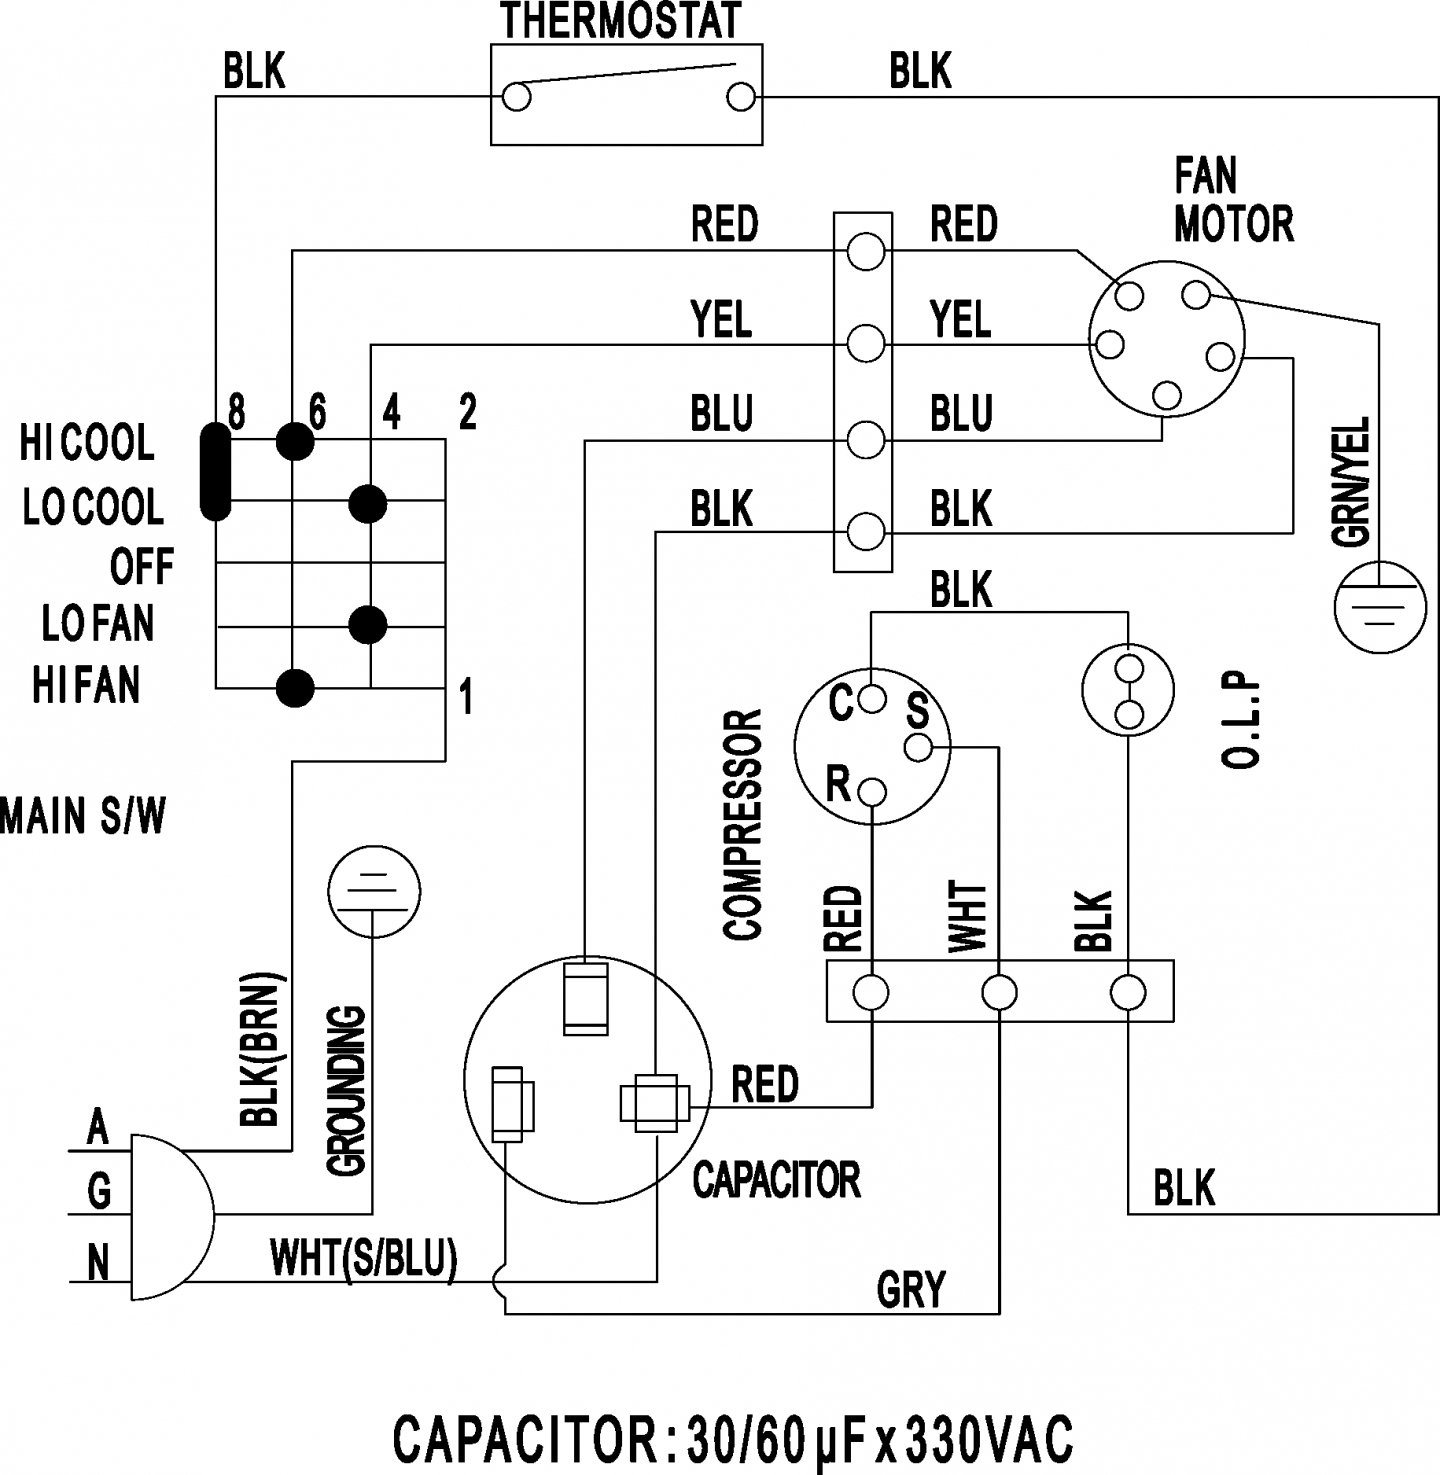 car air conditioning wiring diagram central air conditioning